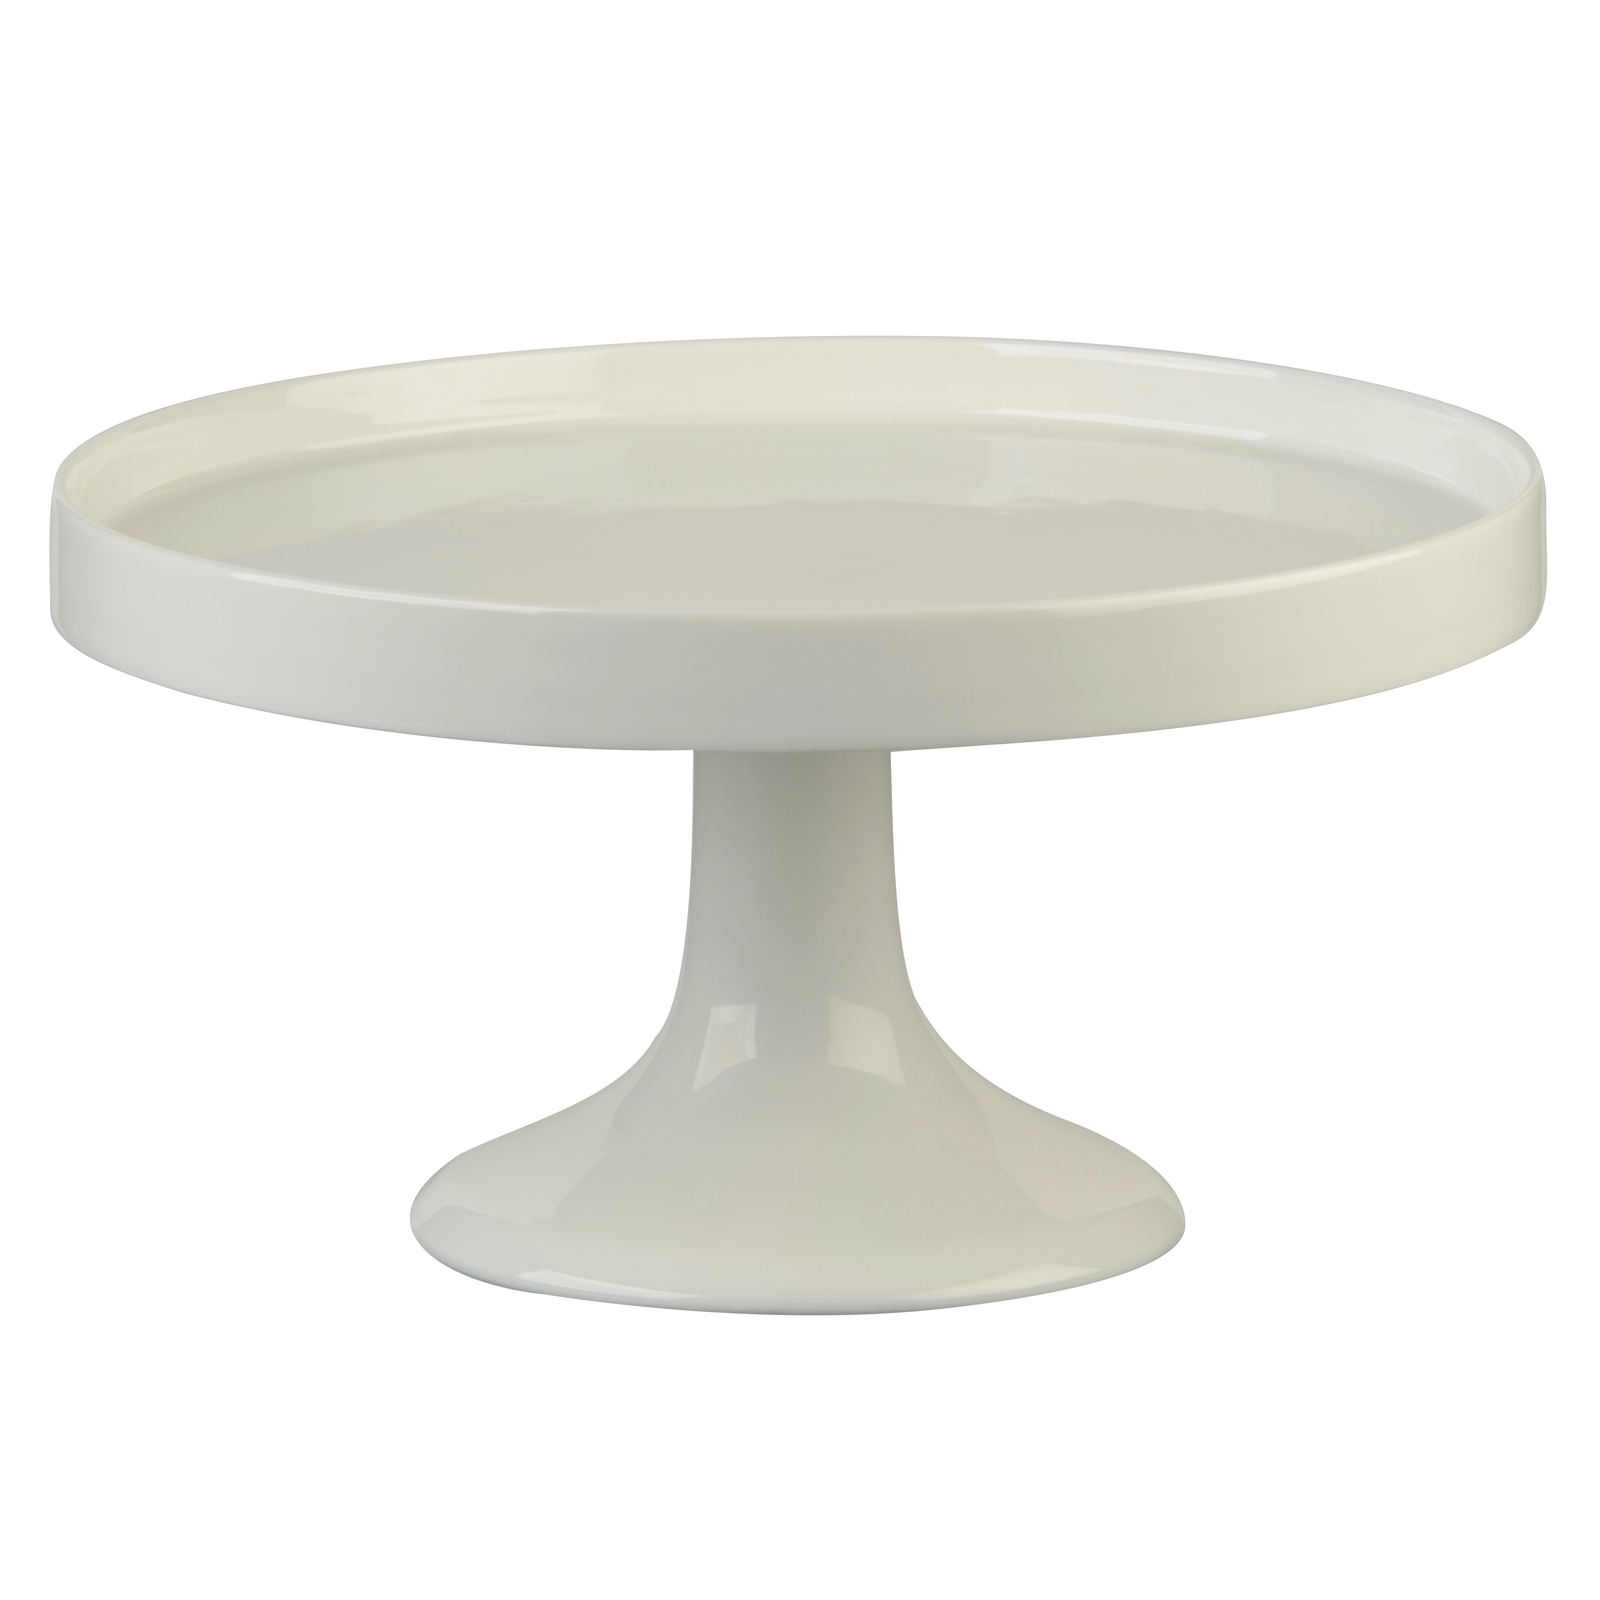 Elegance Cake Stand White - Base Only